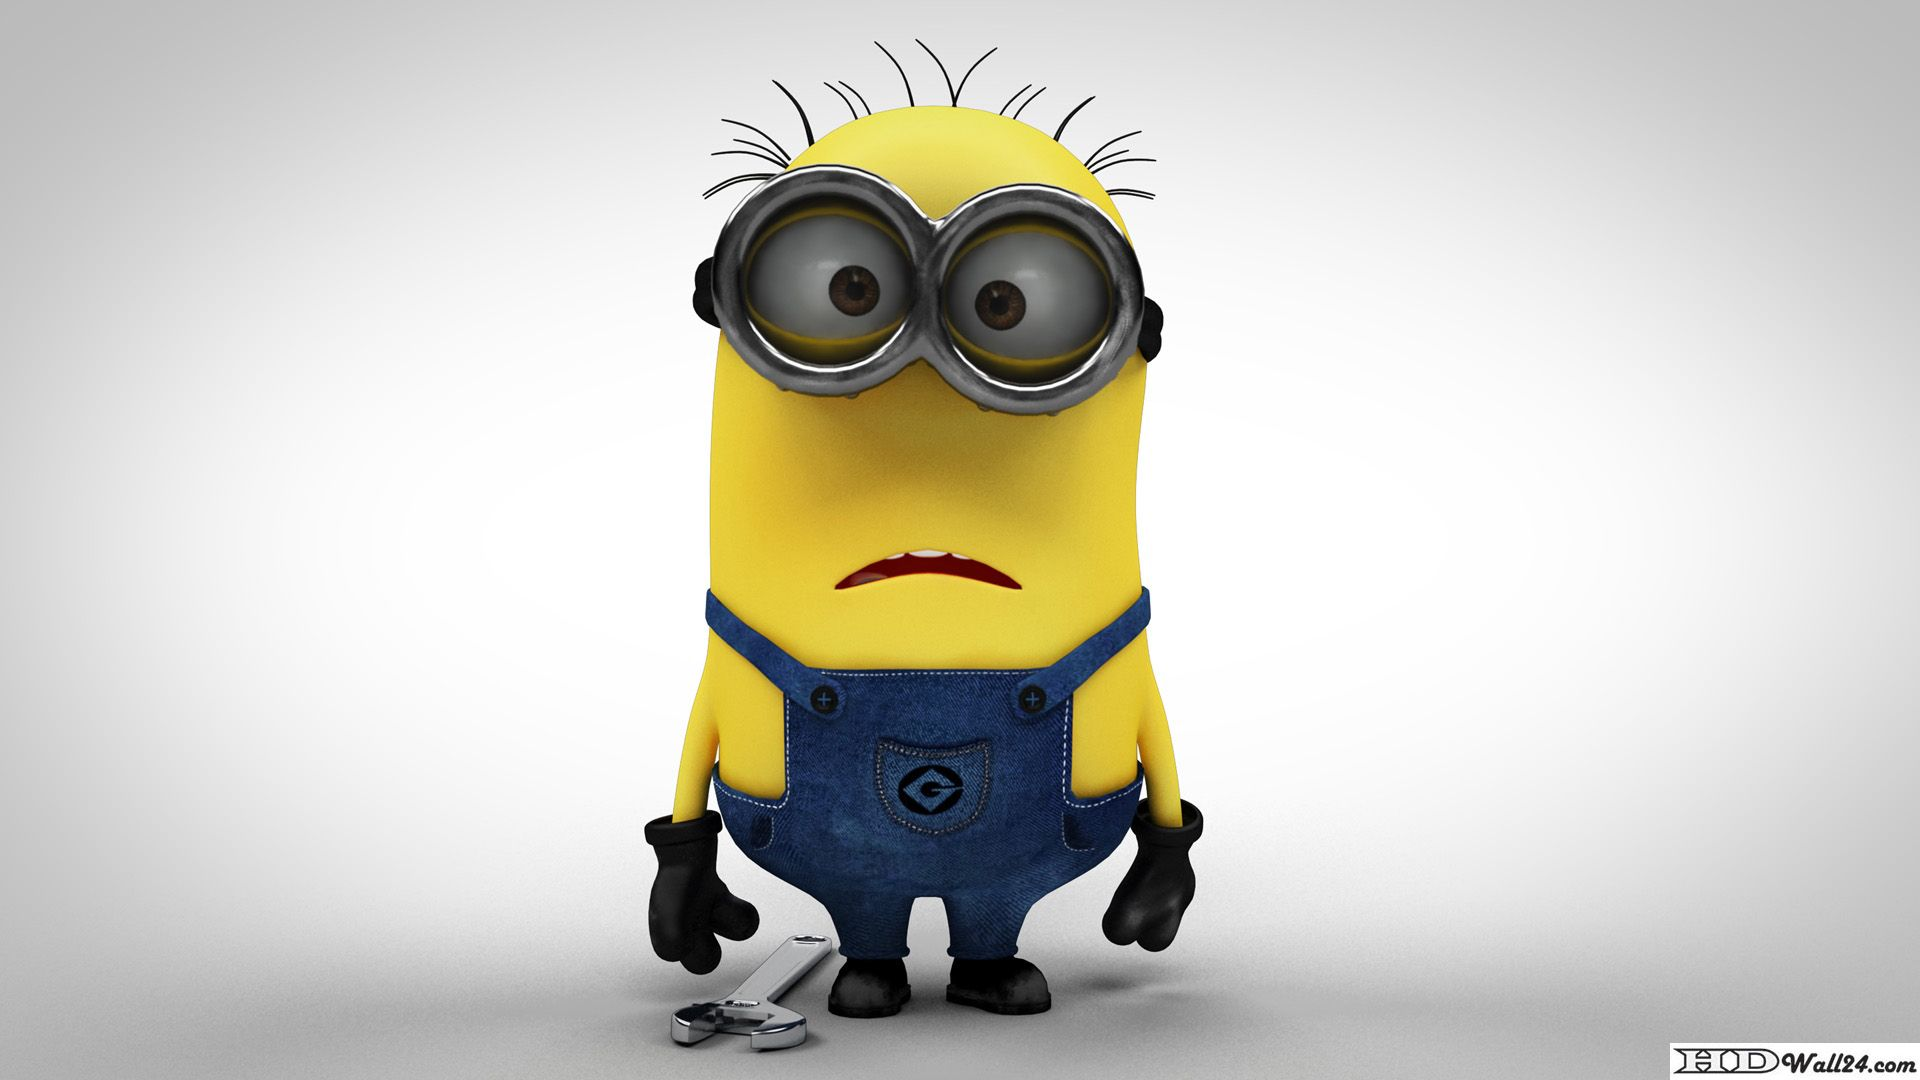 Funny Minion Hd Wallpapers From Free Hd Wallpapers Download From